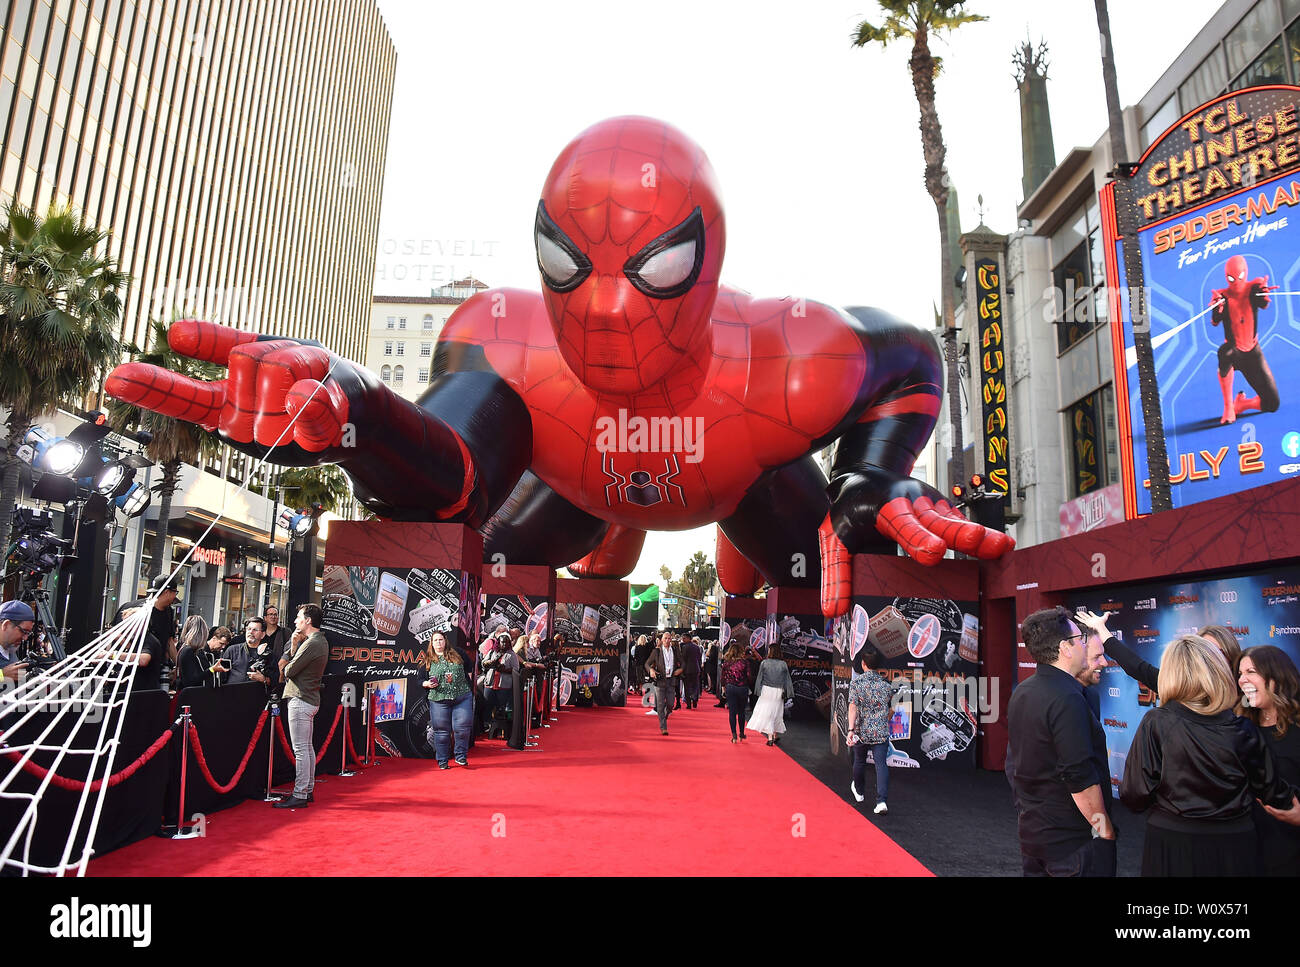 """HOLLYWOOD, CA - JUNE 26: Atmosphere at the premiere of Sony Pictures' """"Spider-Man Far From Home"""" at TCL Chinese Theatre on June 26, 2019 in Hollywood, California. Stock Photo"""